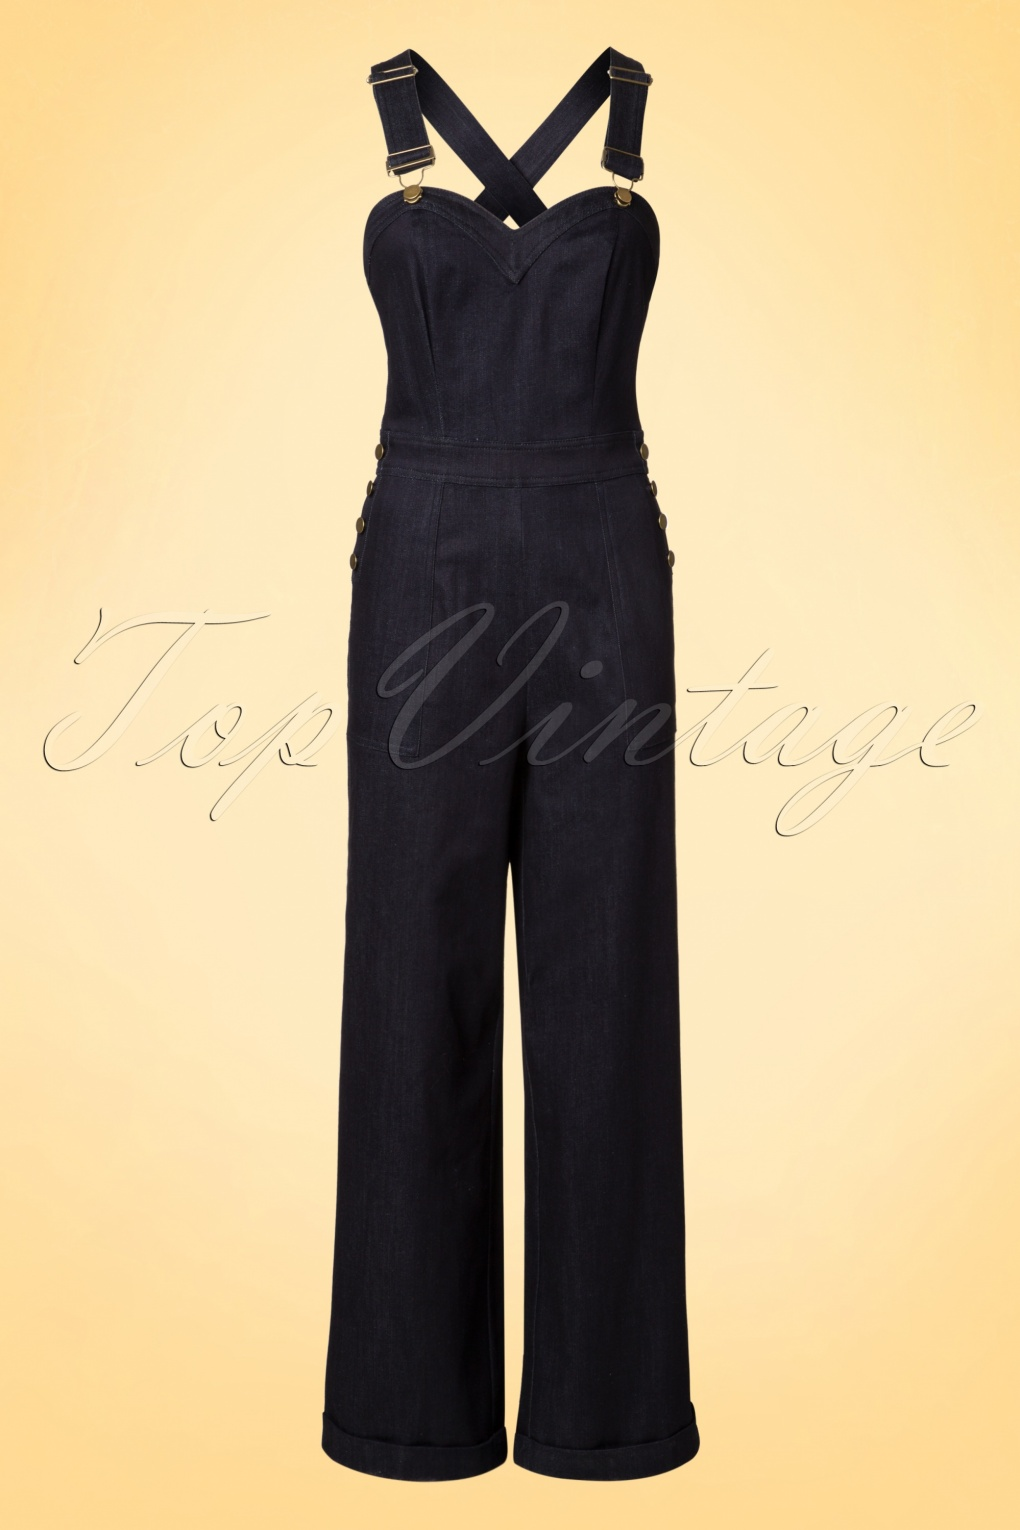 Vintage Overalls 1910s -1950s Pictures and History 40s Rosie Dungaree Jumpsuit in Denim £69.45 AT vintagedancer.com